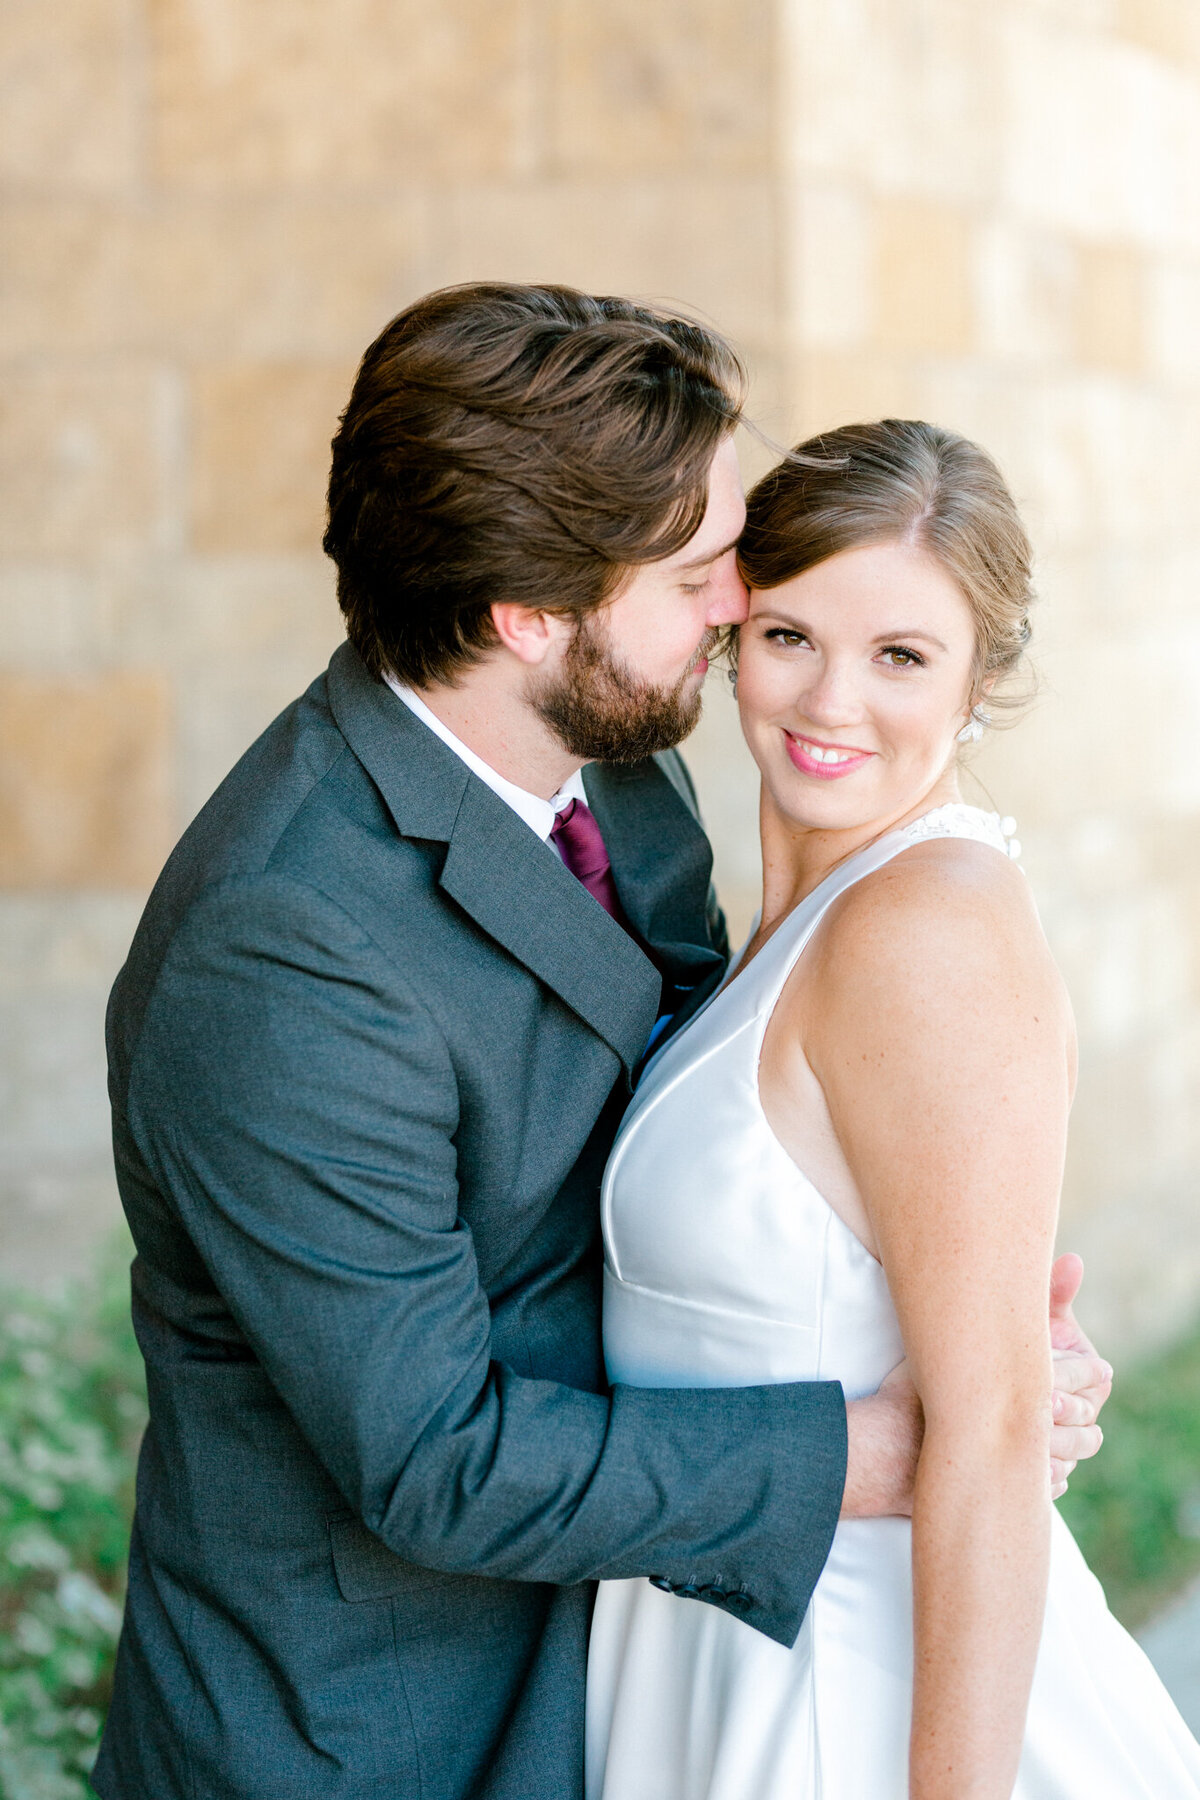 Kaylee & Michael's Wedding at Watermark Community Church | Dallas Wedding Photographer | Sami Kathryn Photography-47